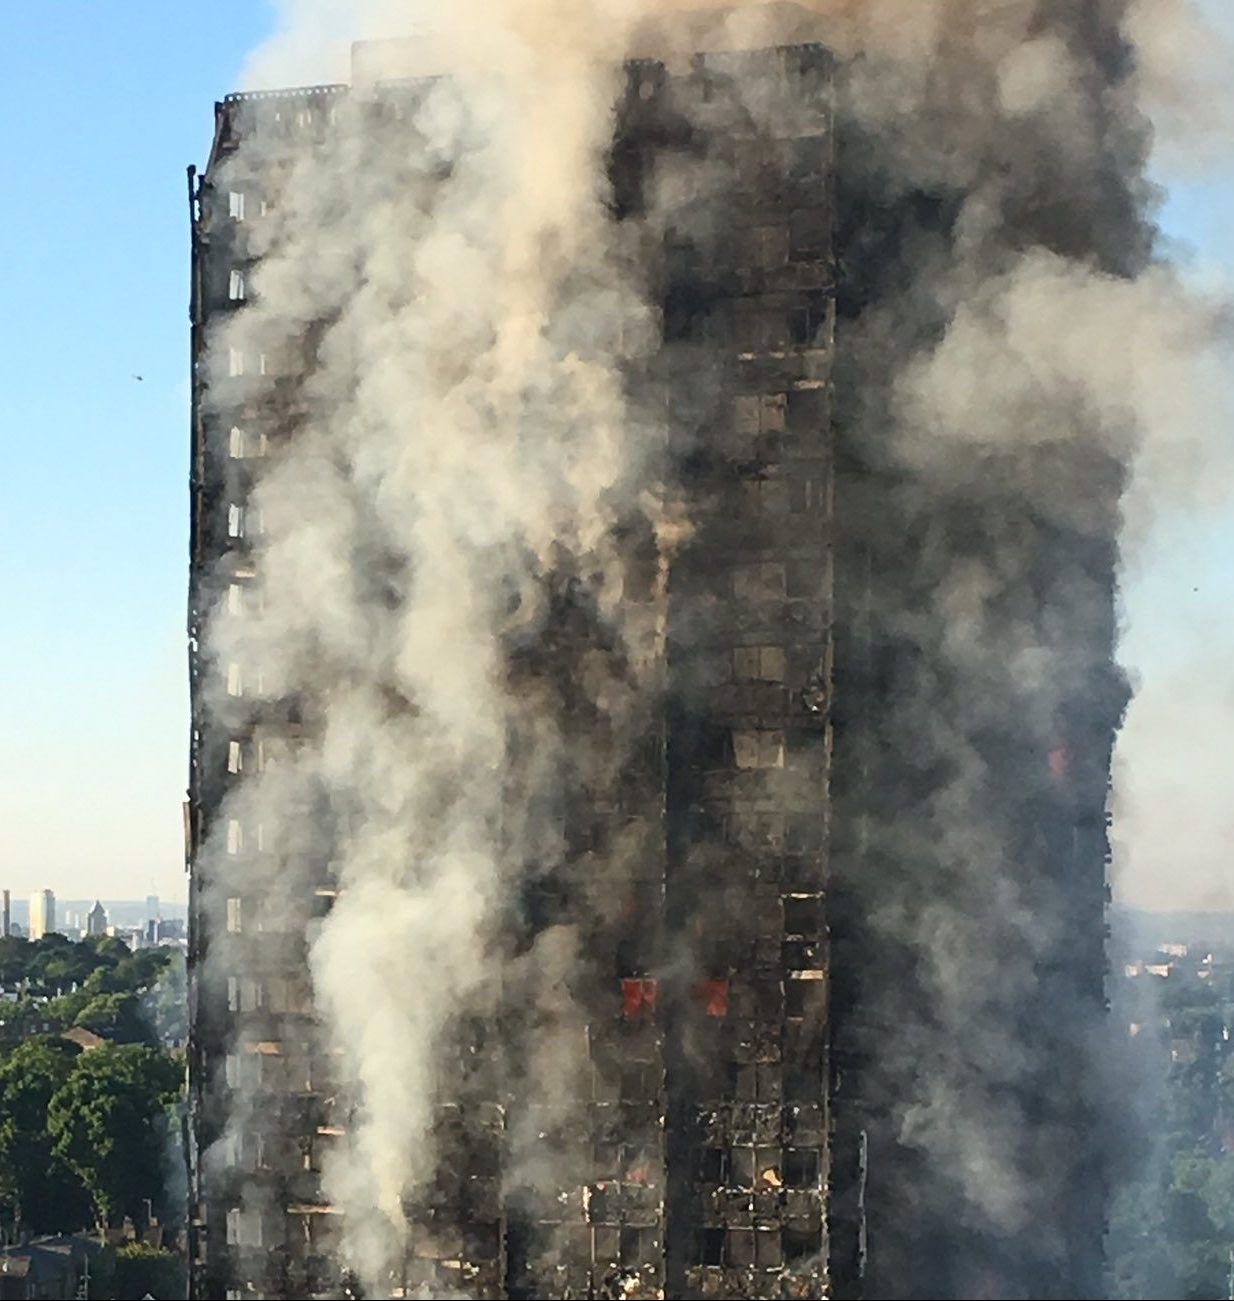 'Grenfell Tower fraudster thought she was untouchable'